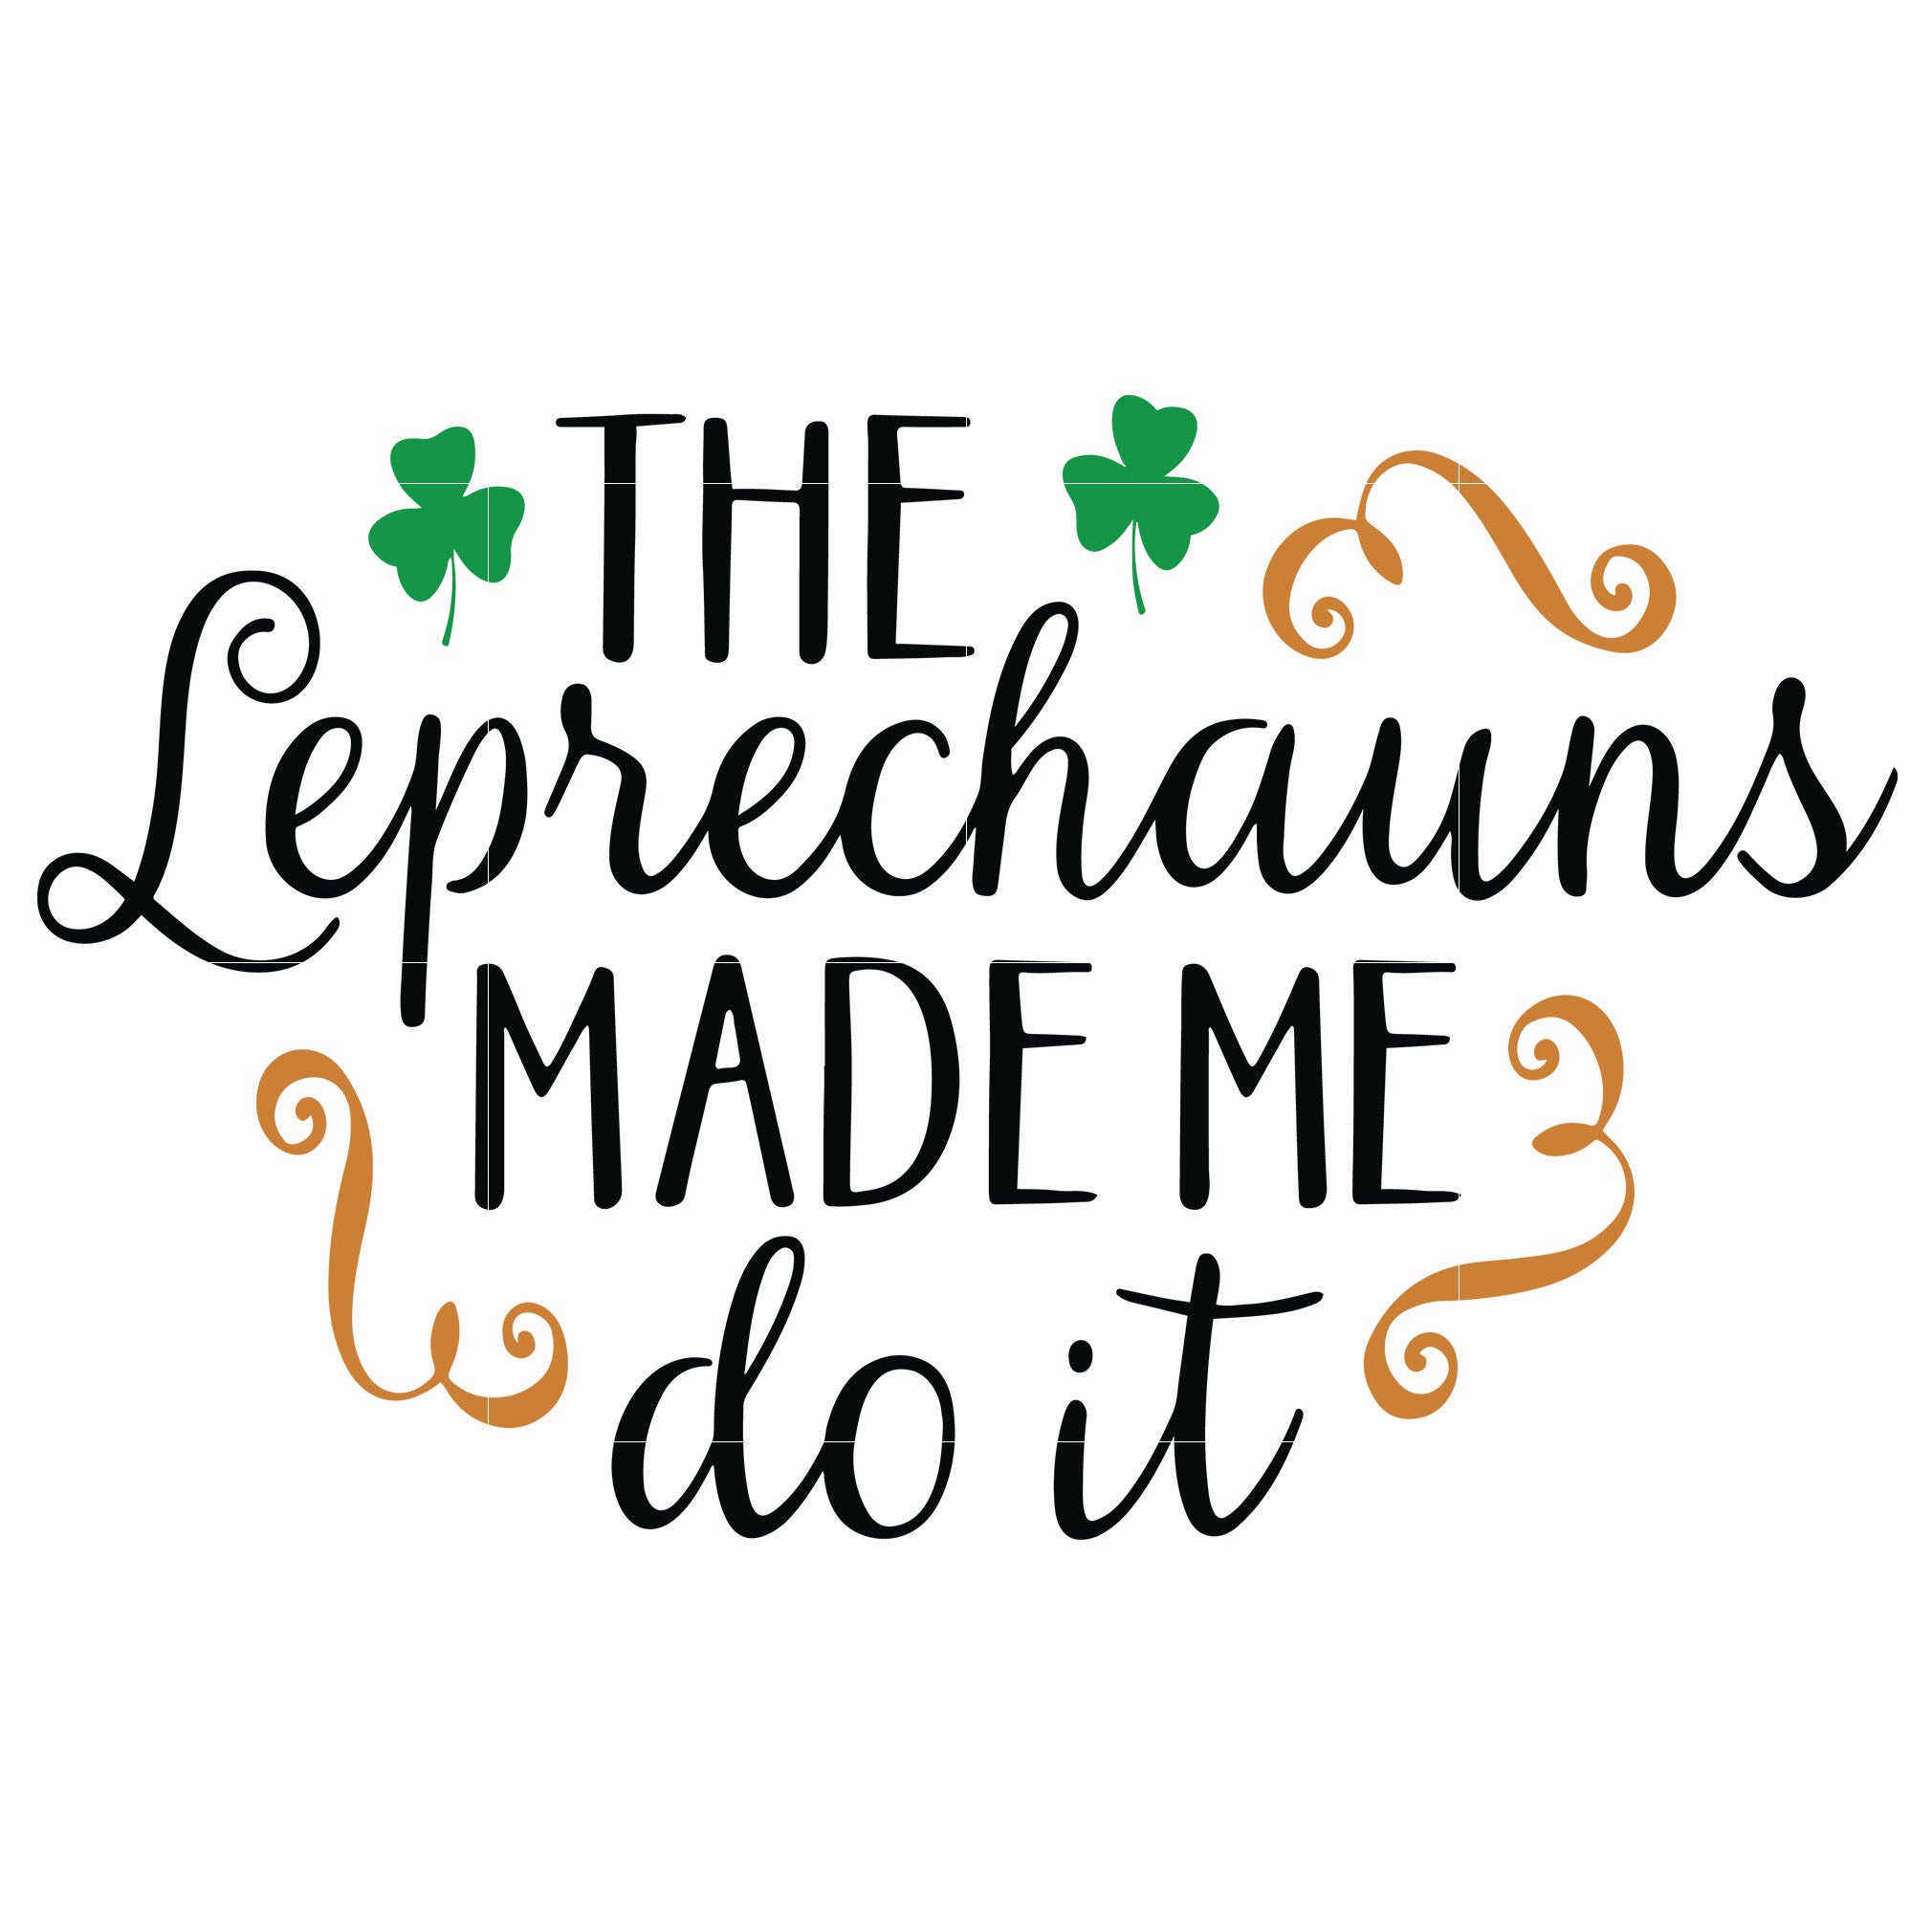 The leprechauns made me do it svg, shamrock svg, st patrick day svg, leprechaun svg, patrick svg, leprechaun svg, dxf, eps, png digital file